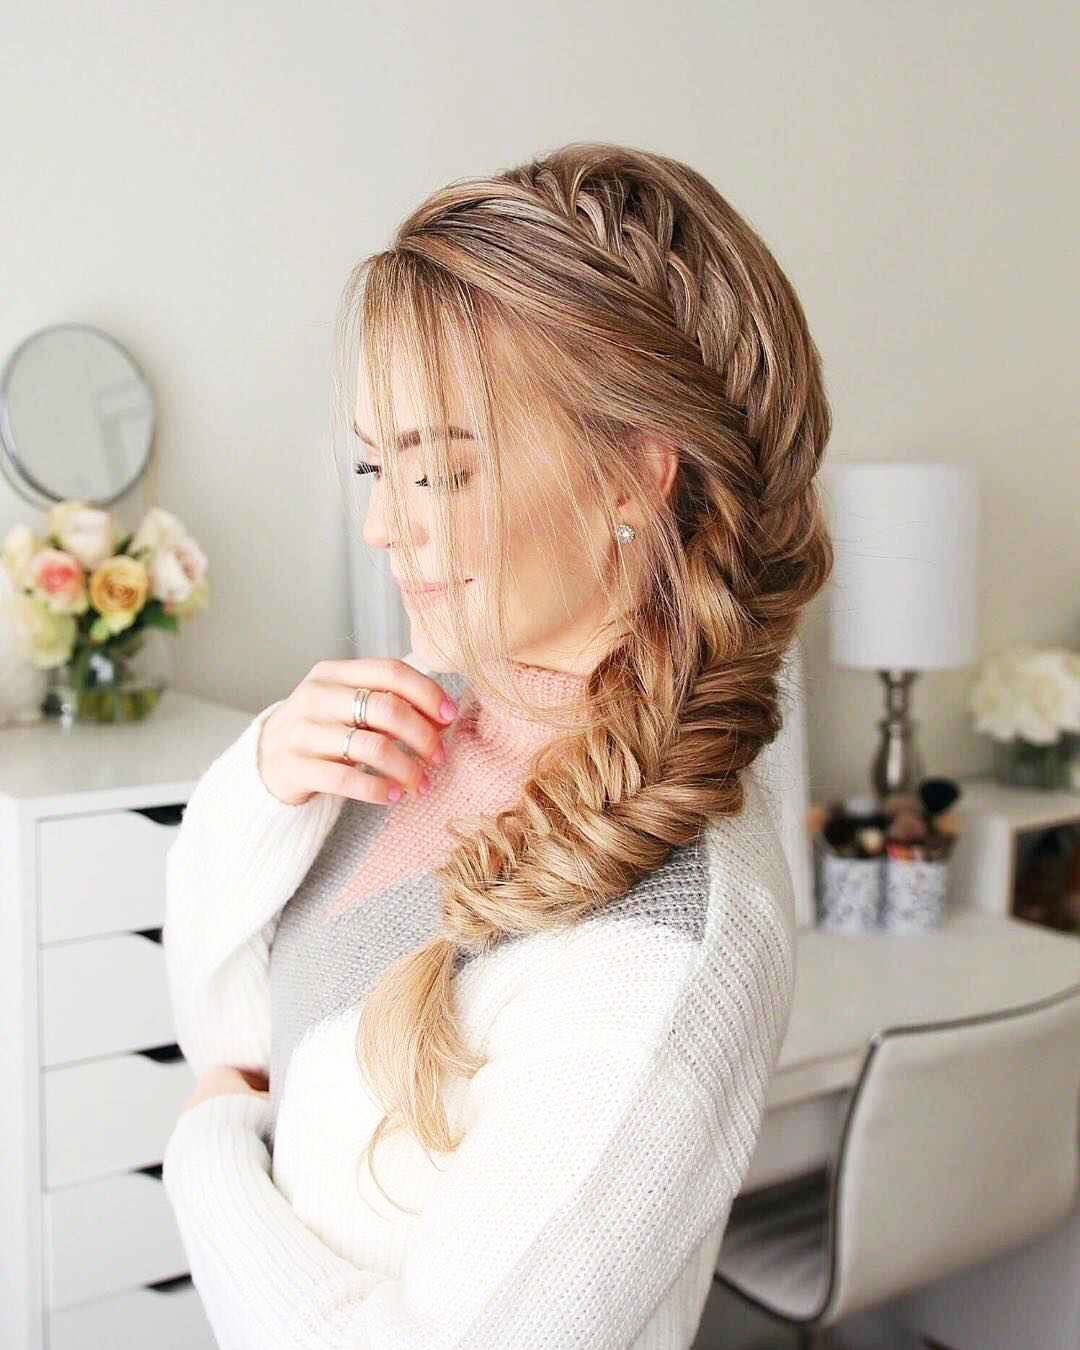 Hairstyles with round